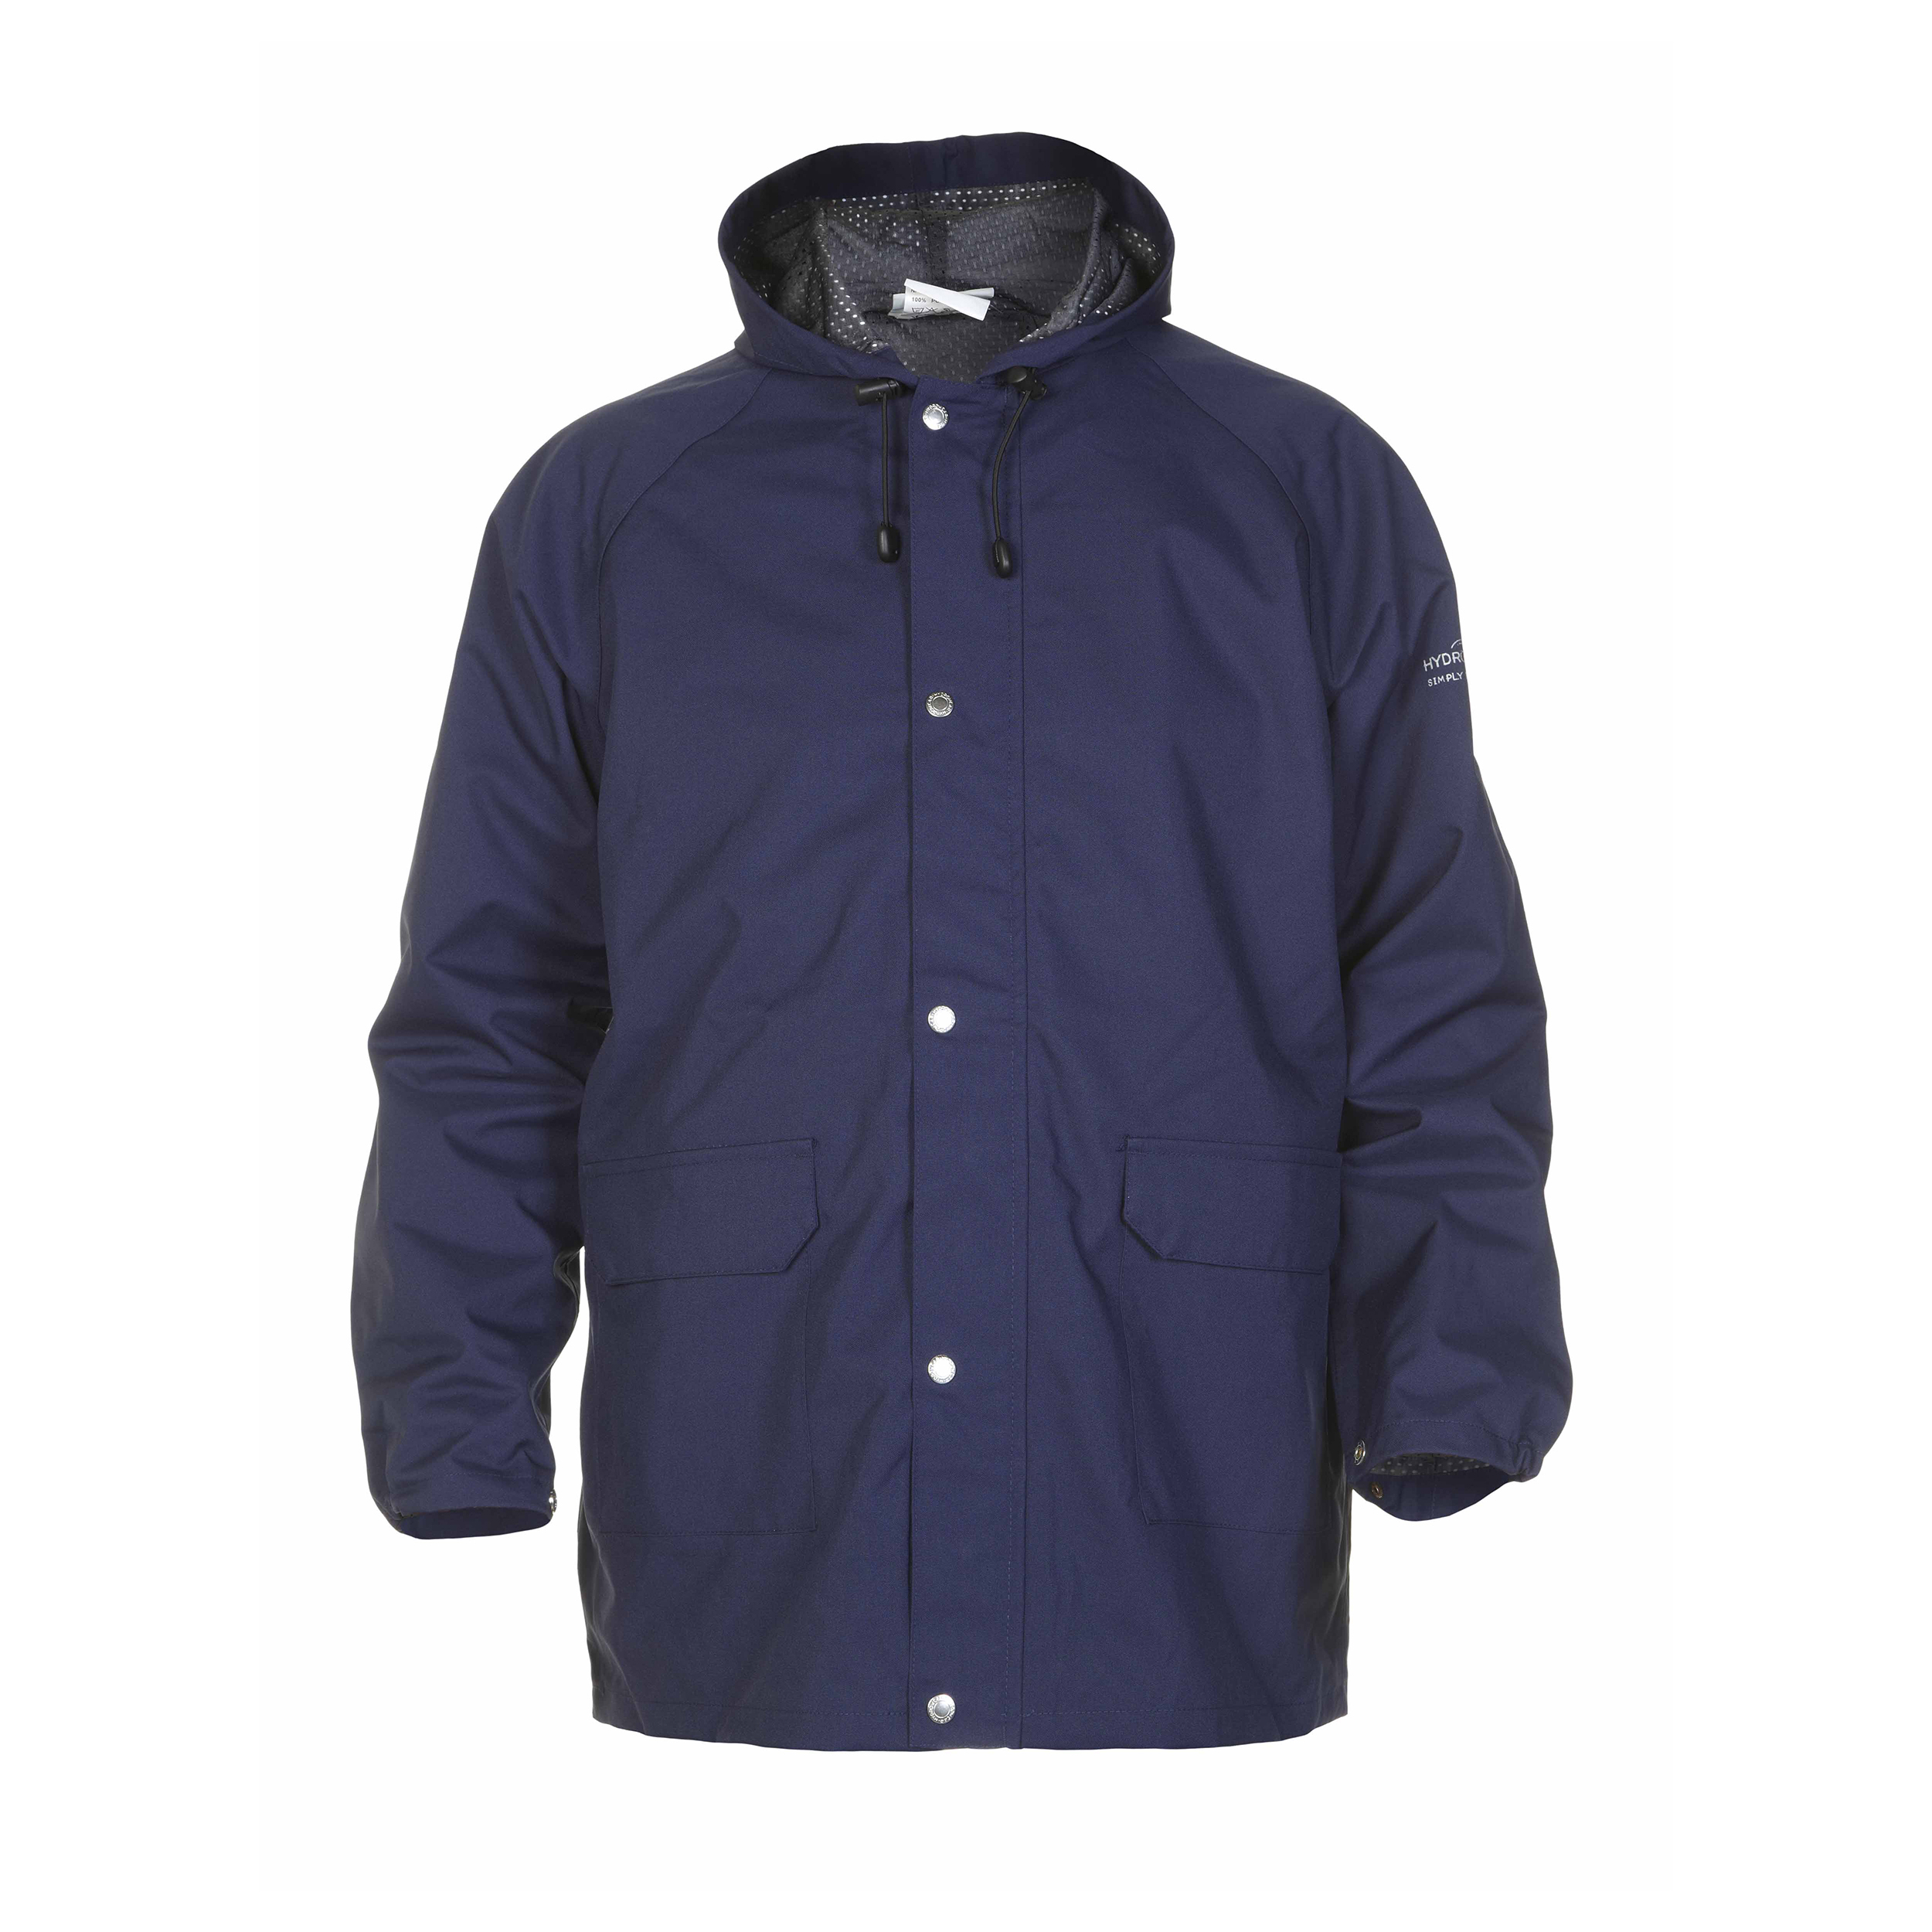 High Visibility Hydrowear Ulft SNS Waterproof Jacket Polyester X Large Navy Blue Ref HYD072400NXL *Up to 3 Day Leadtime*